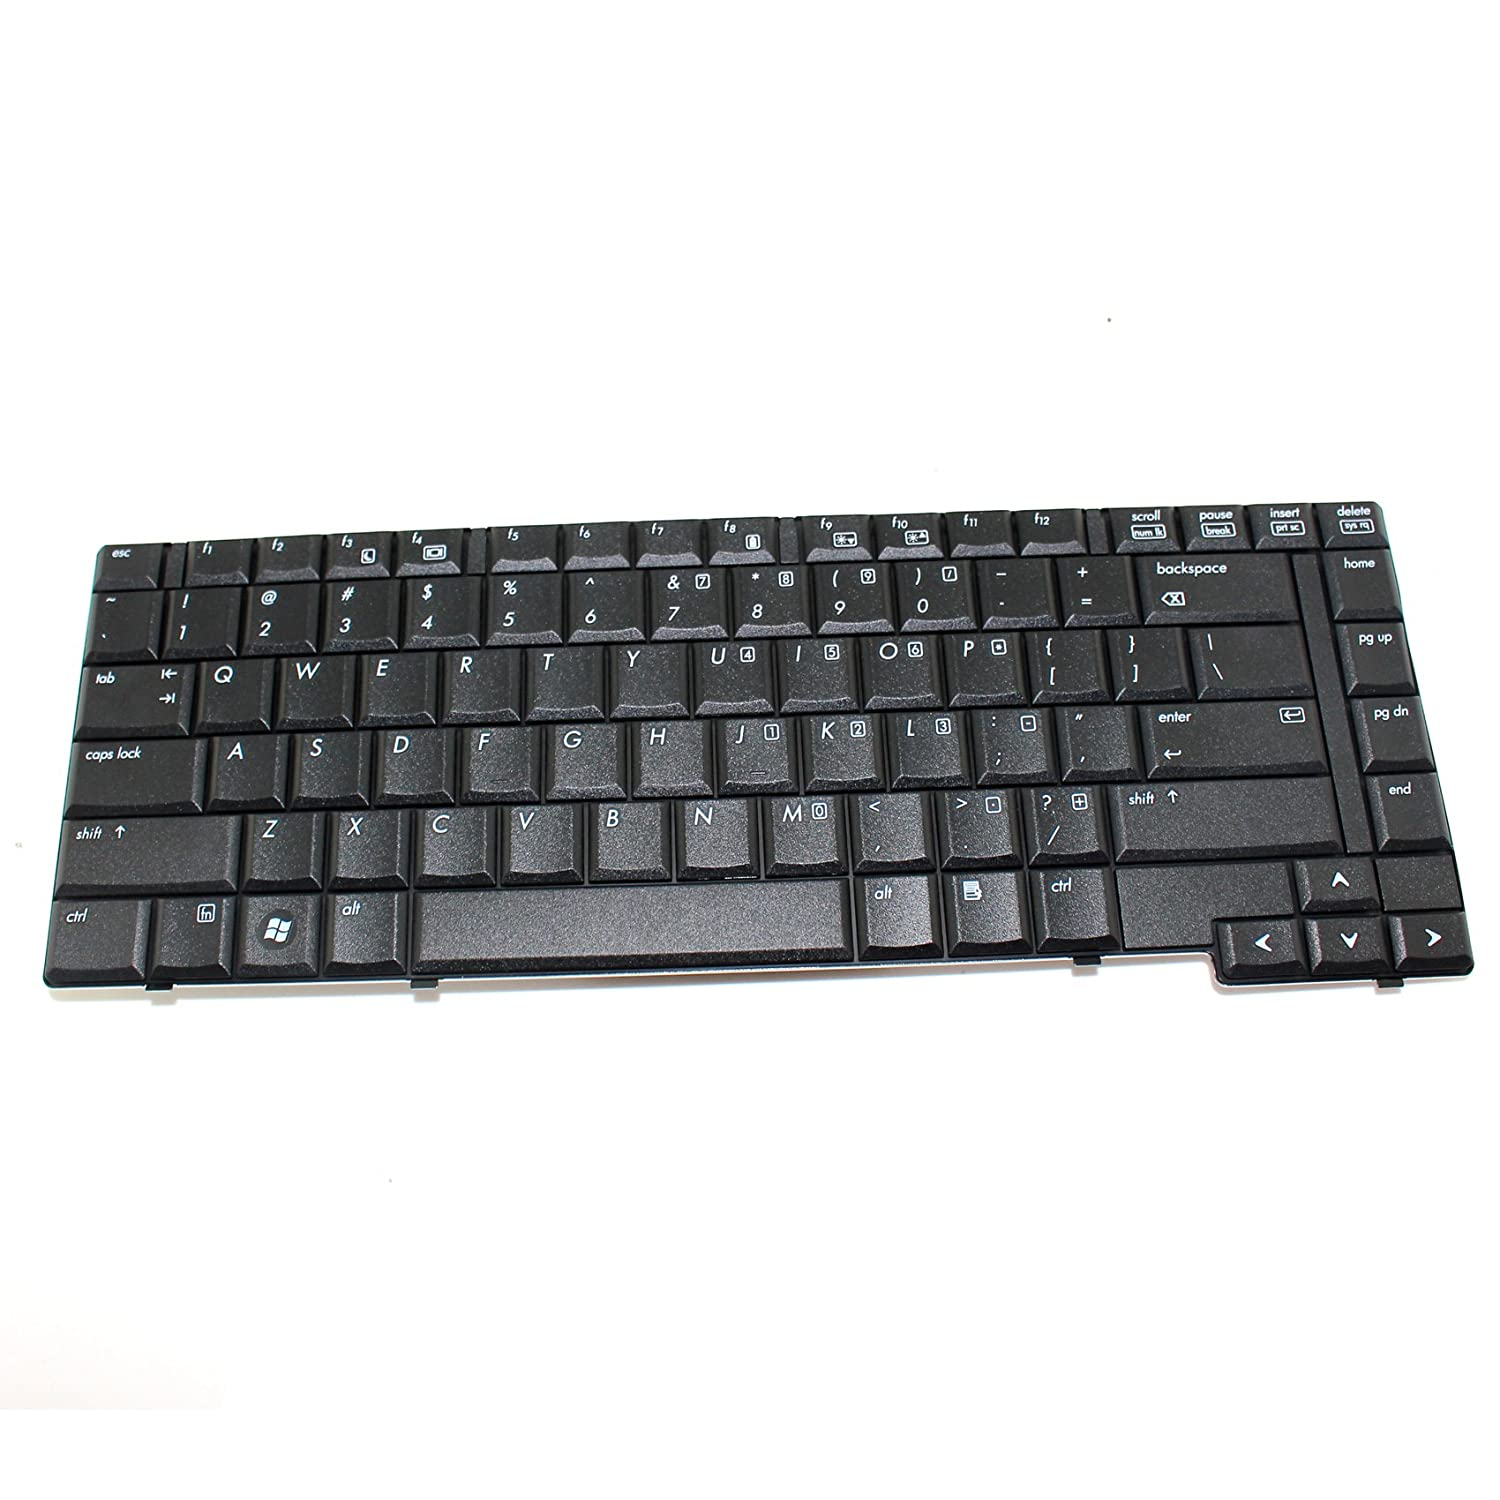 Generic New Black Laptop US Keyboard for HP Compaq 6530B 6535B Series Replacement Parts generic new black laptop us keyboard for hp compaq 6530b 6535b series replacement parts